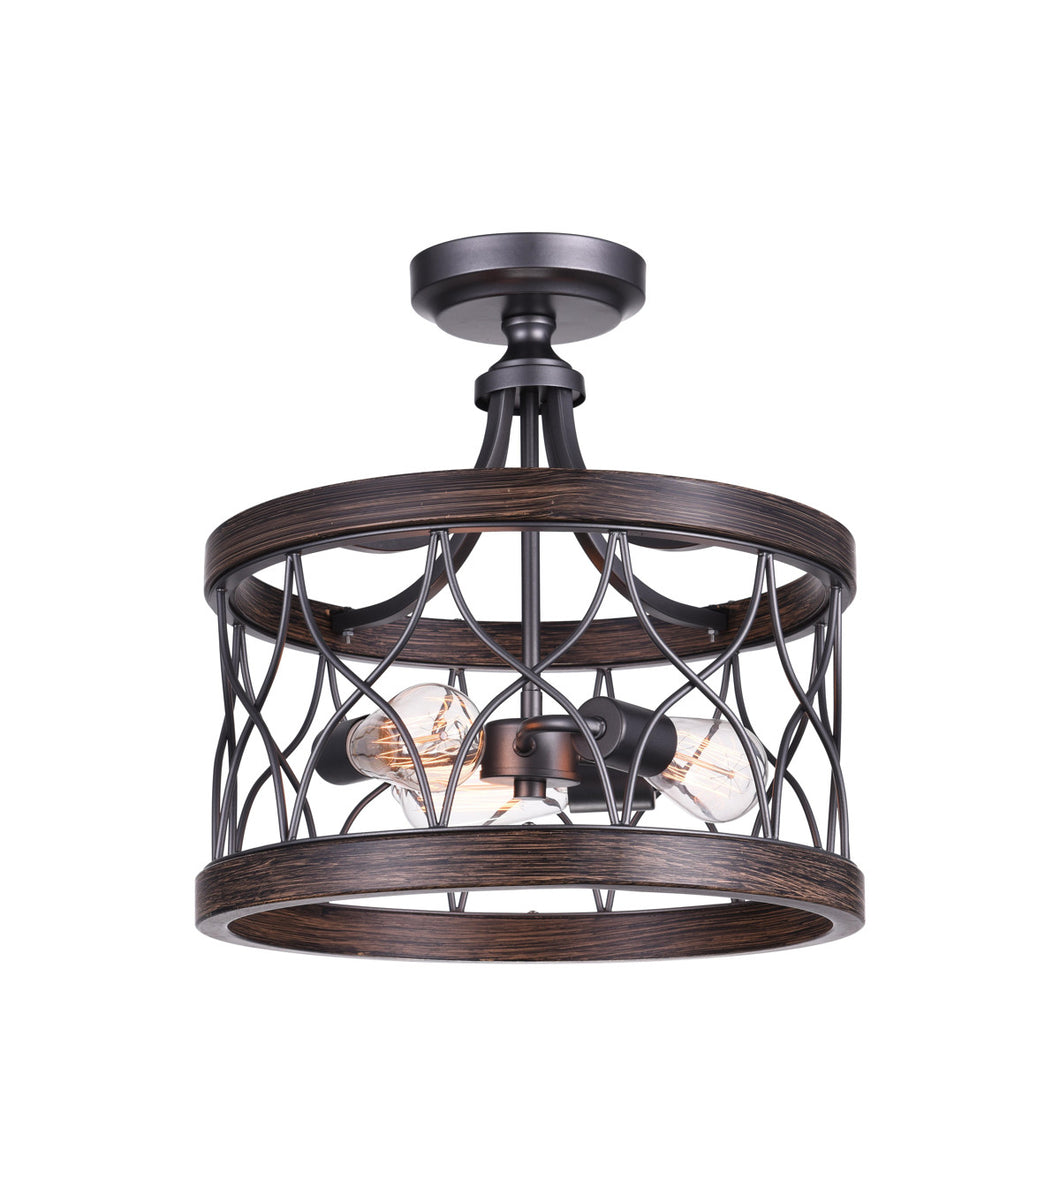 3 Light Cage Semi-Flush Mount with Gun Metal finish